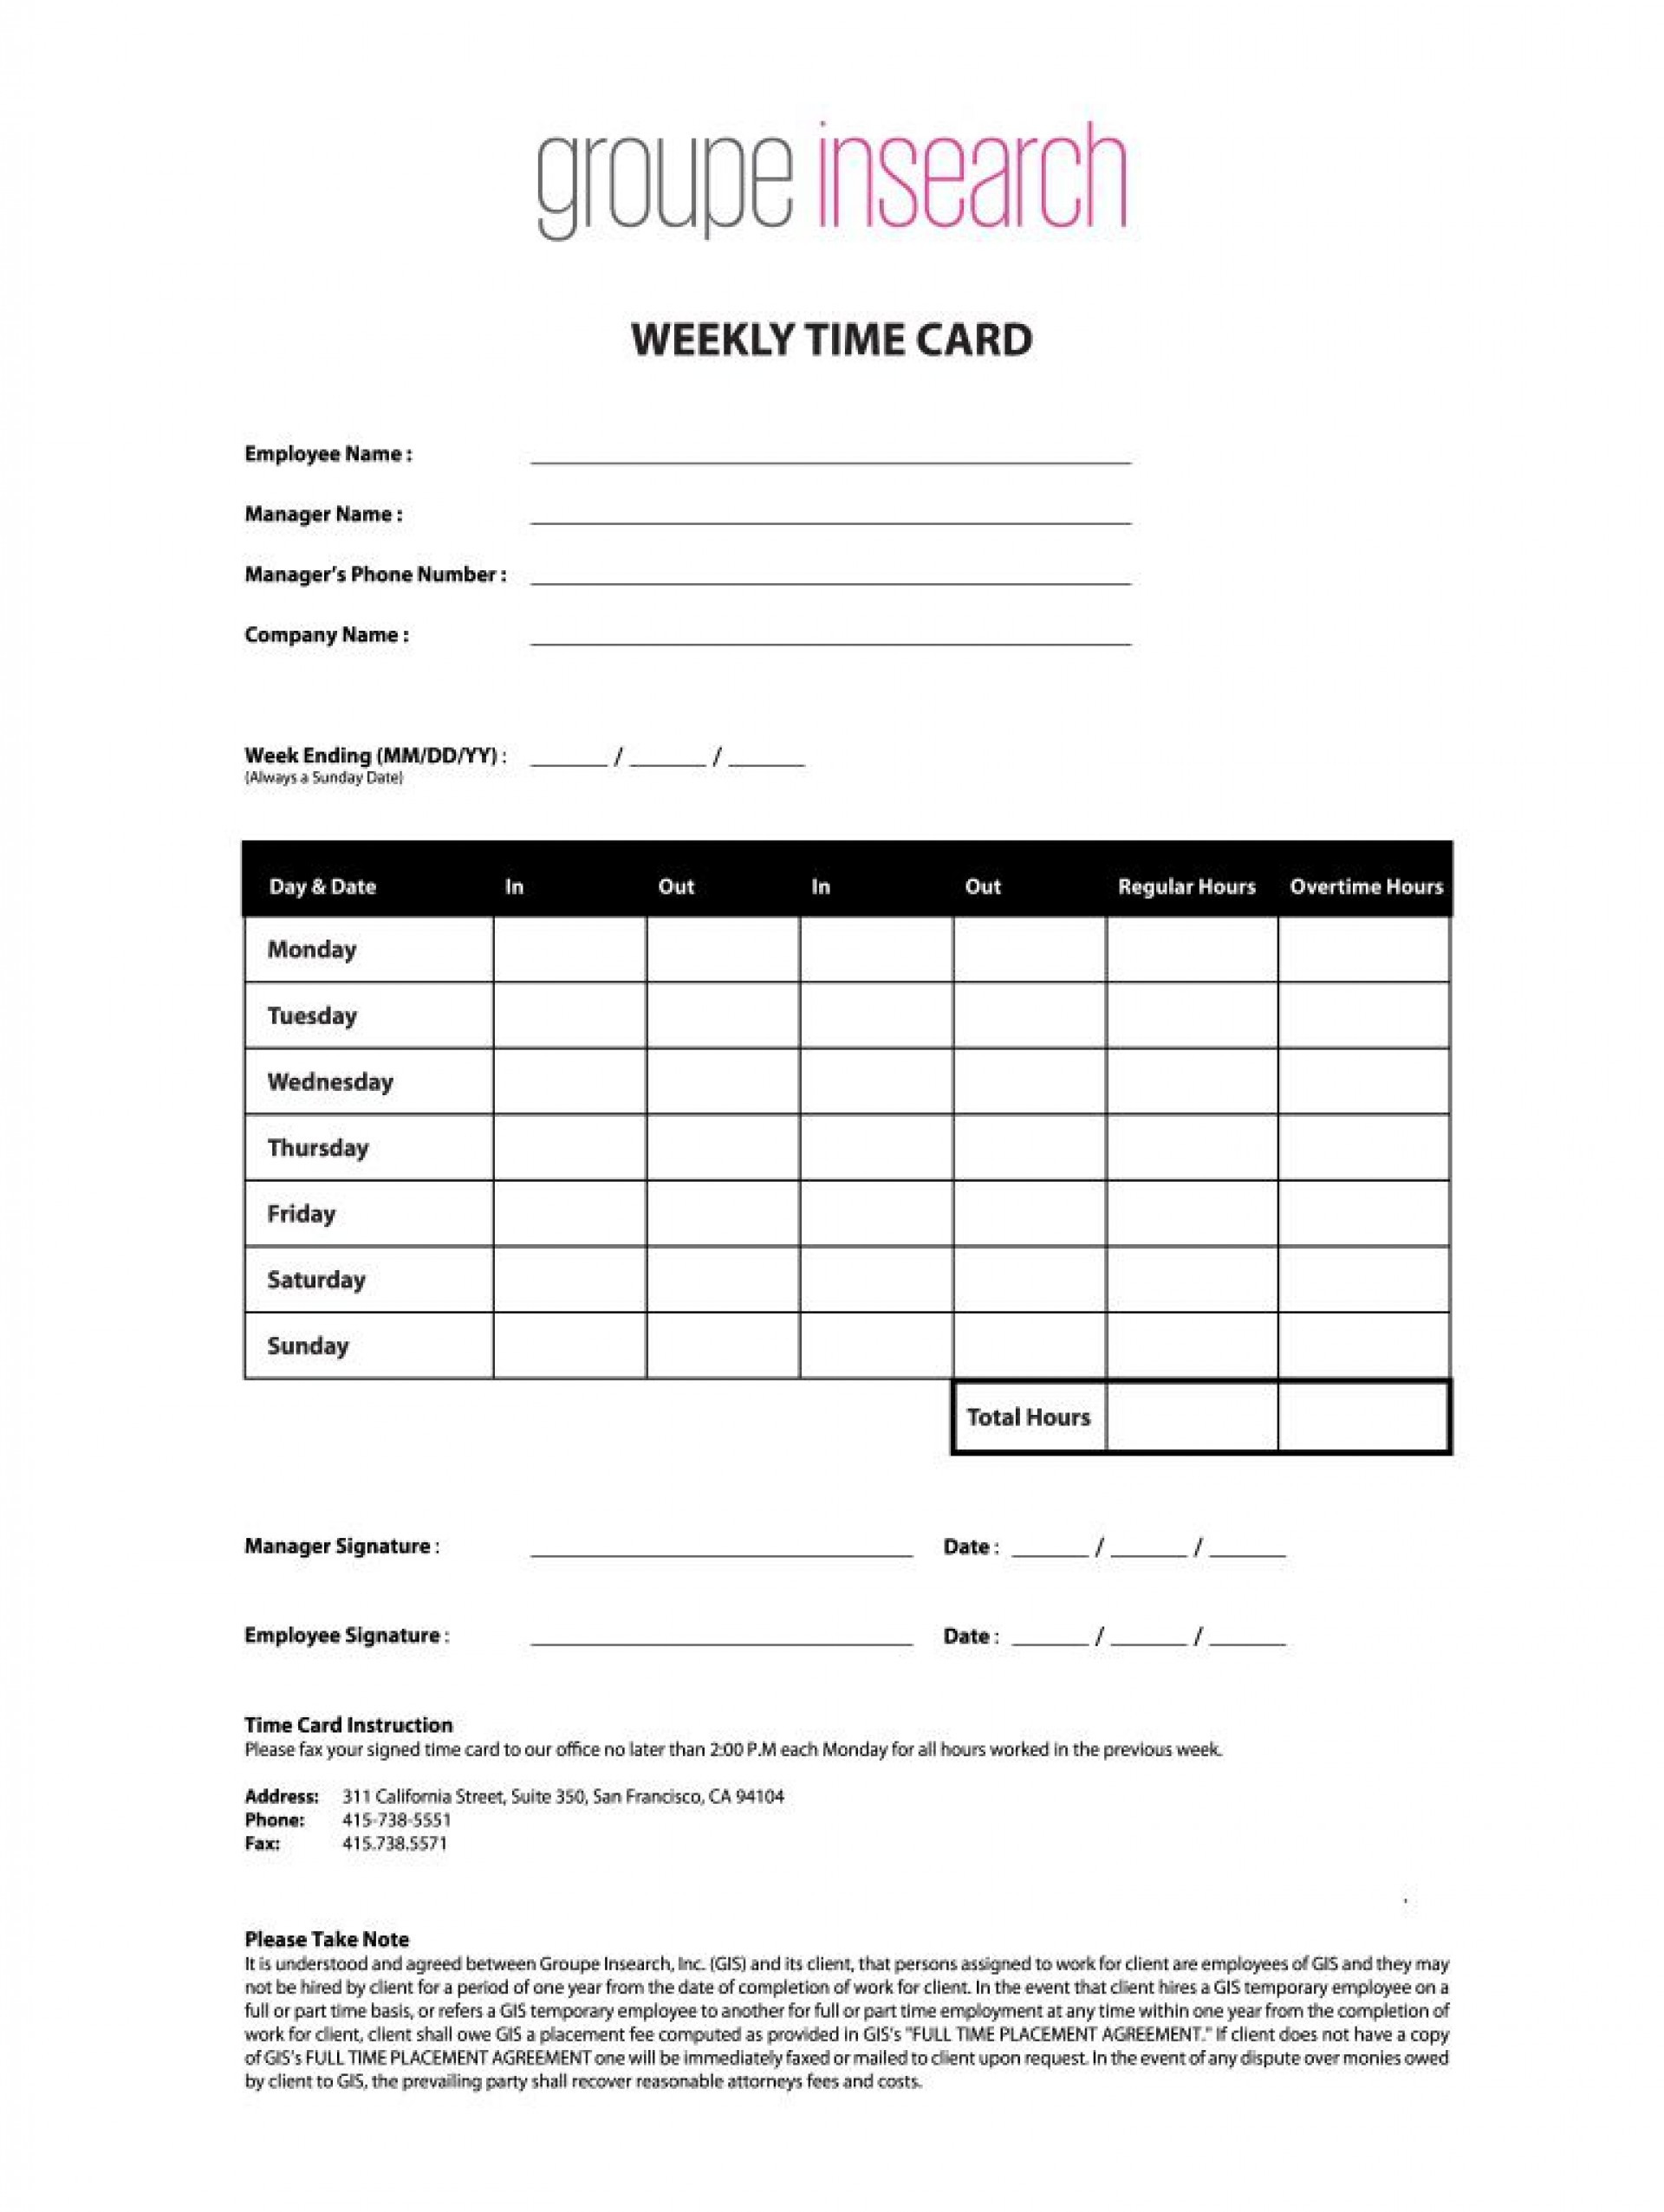 Employee Time Card Template